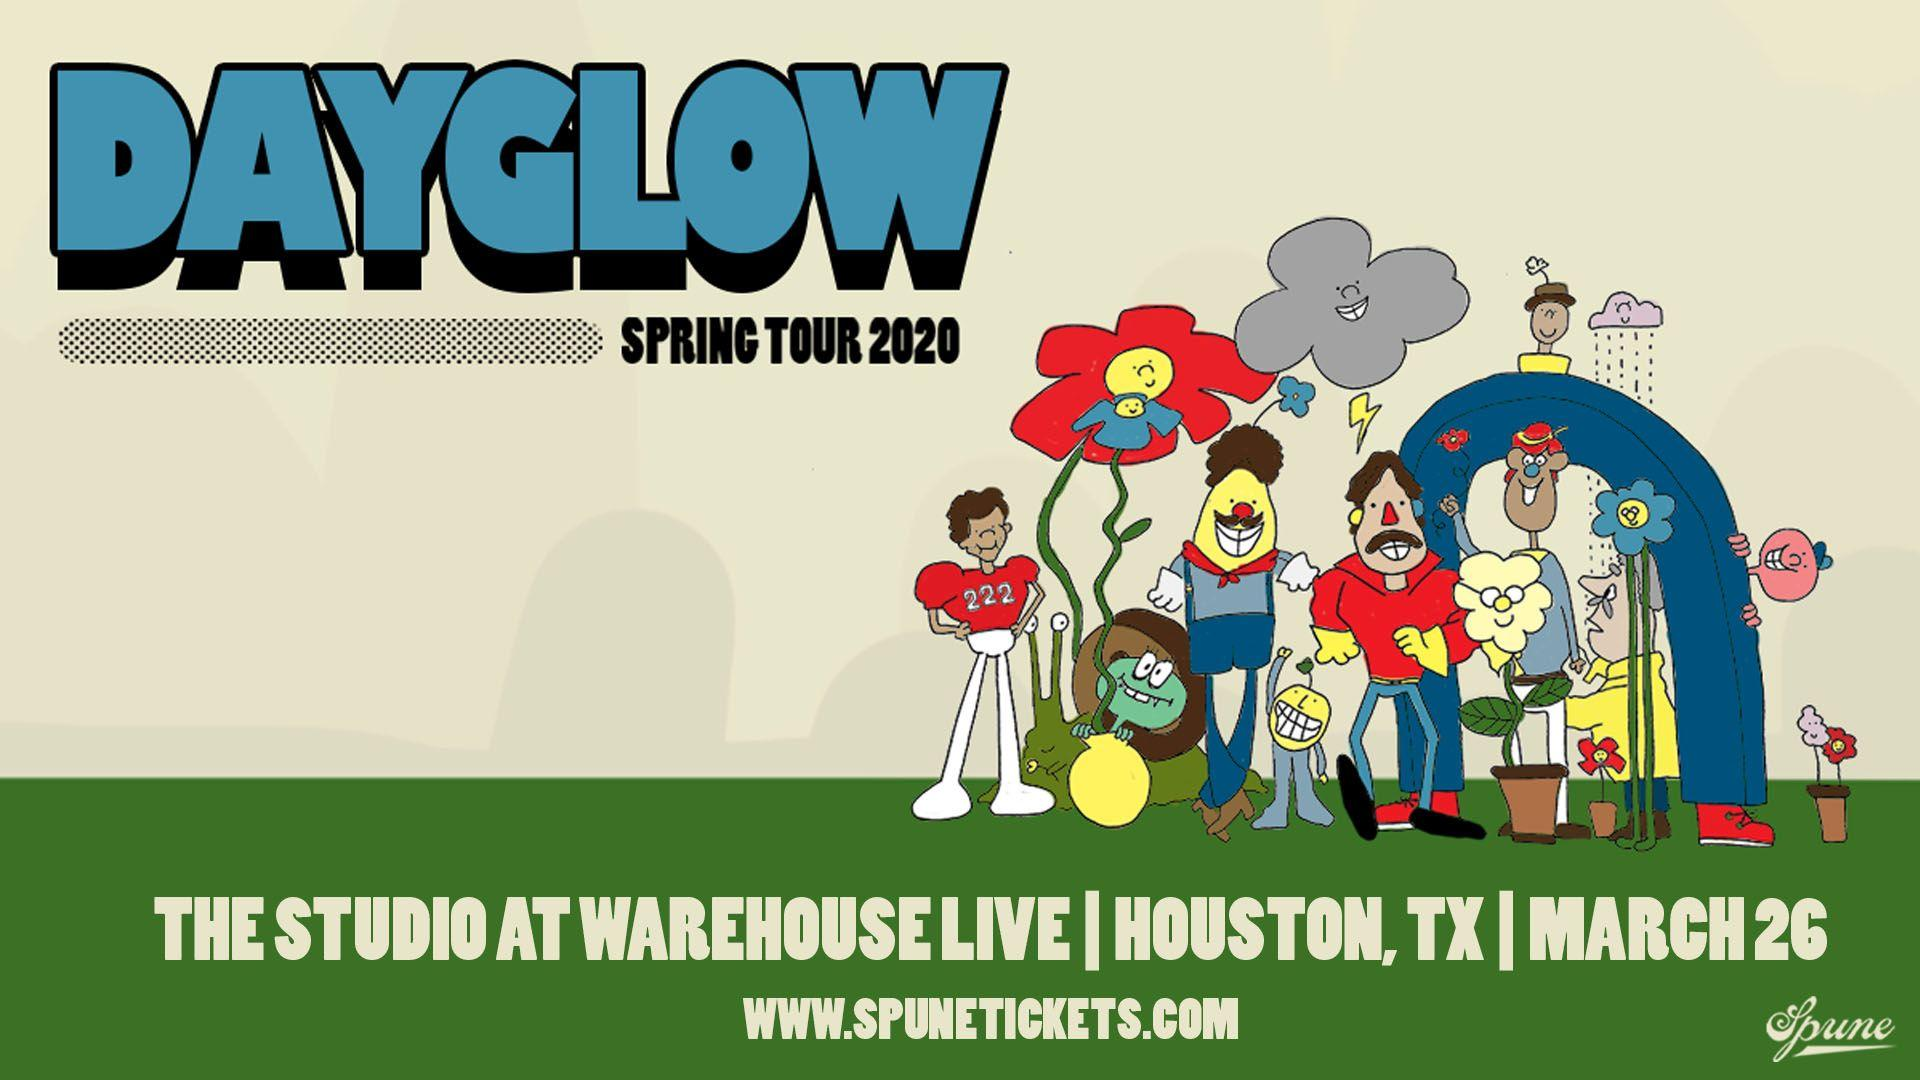 DAYGLOW - SPRING TOUR 2020